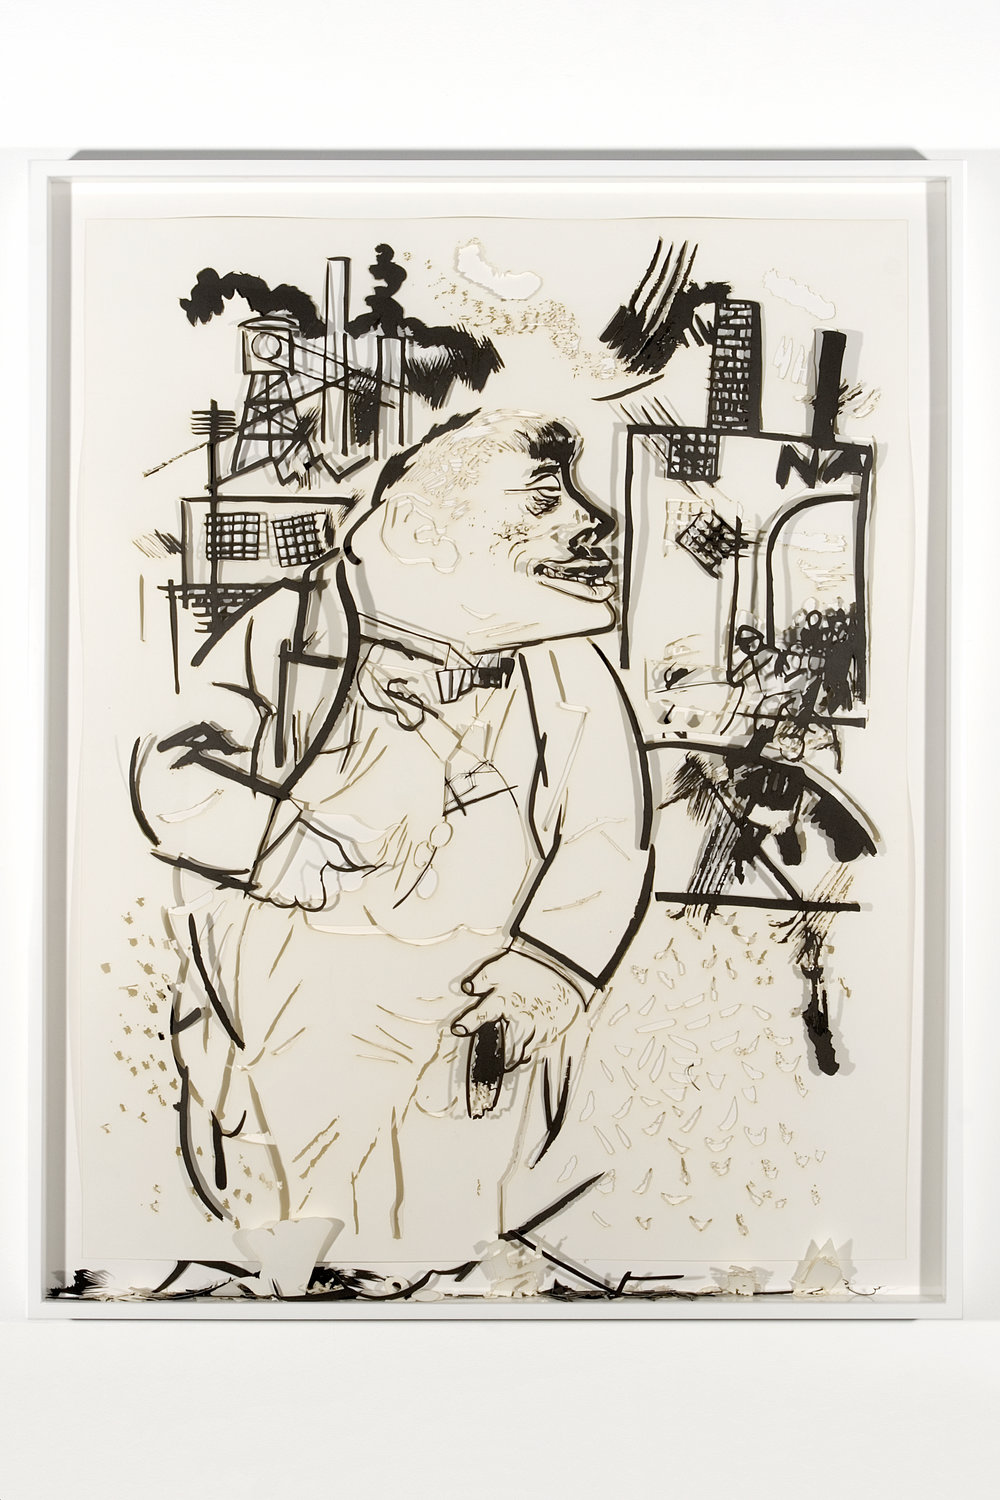 """Collapsed Drawing: """"On his own power"""" (George Grosz), 2007 laser-cut paper and laser-cut archival digital print mounted on museum board 111,5 x 90 cm - 43 7/8 x 35 3/8 inches (framed)"""